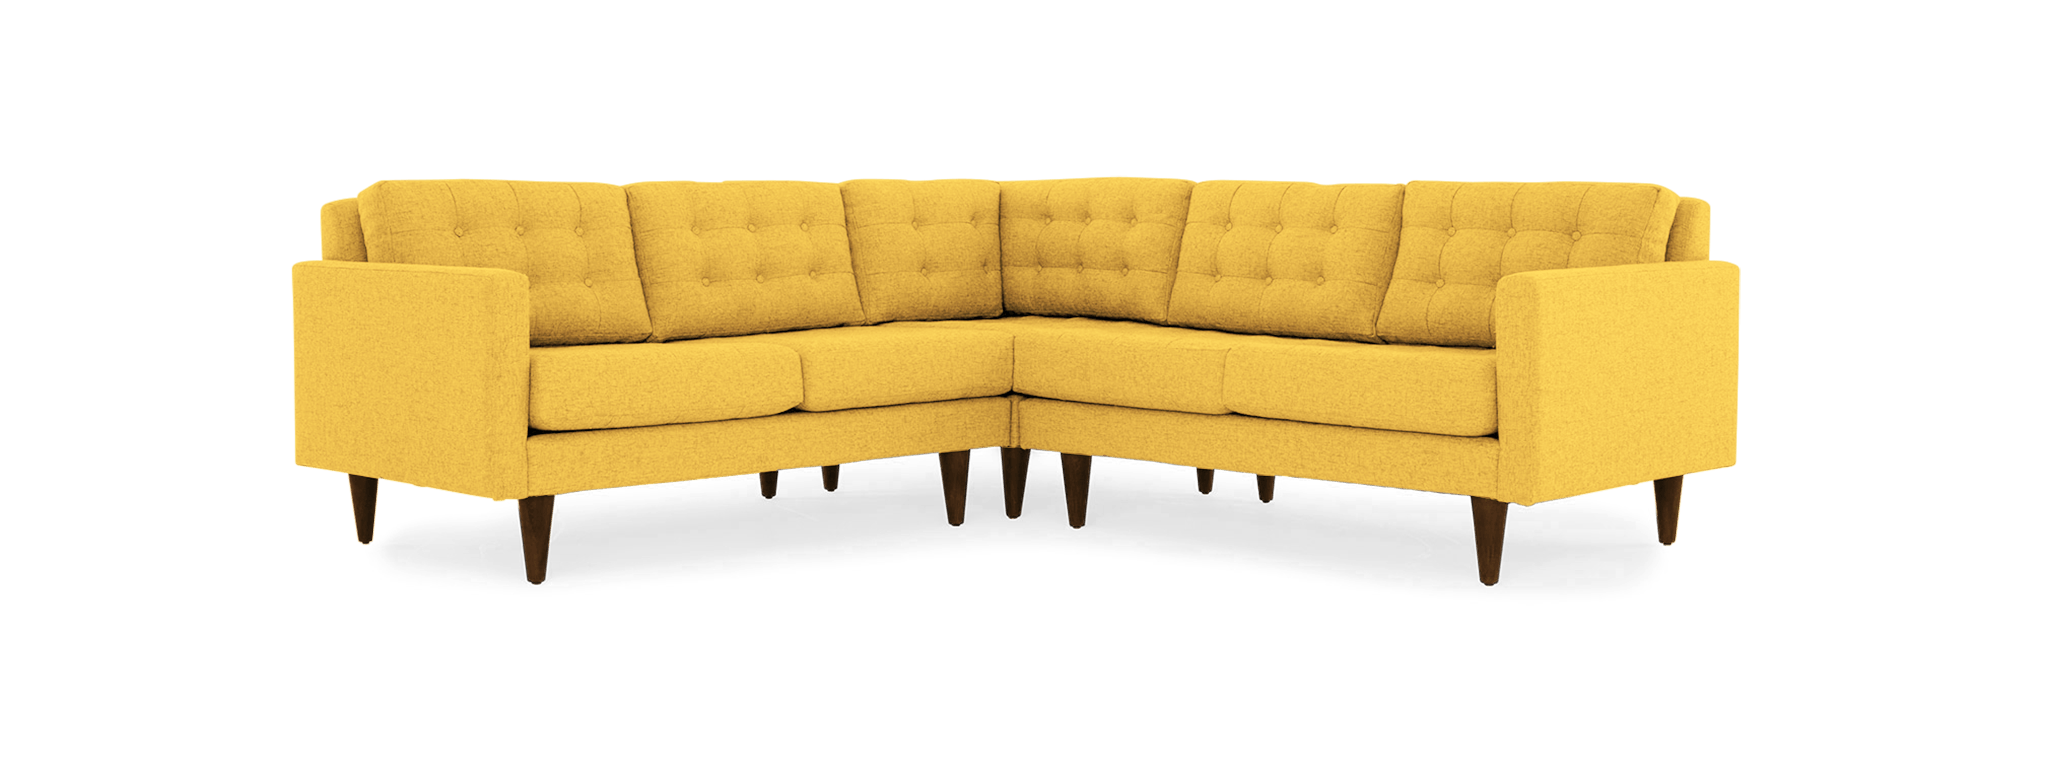 online furniture stores with free returns